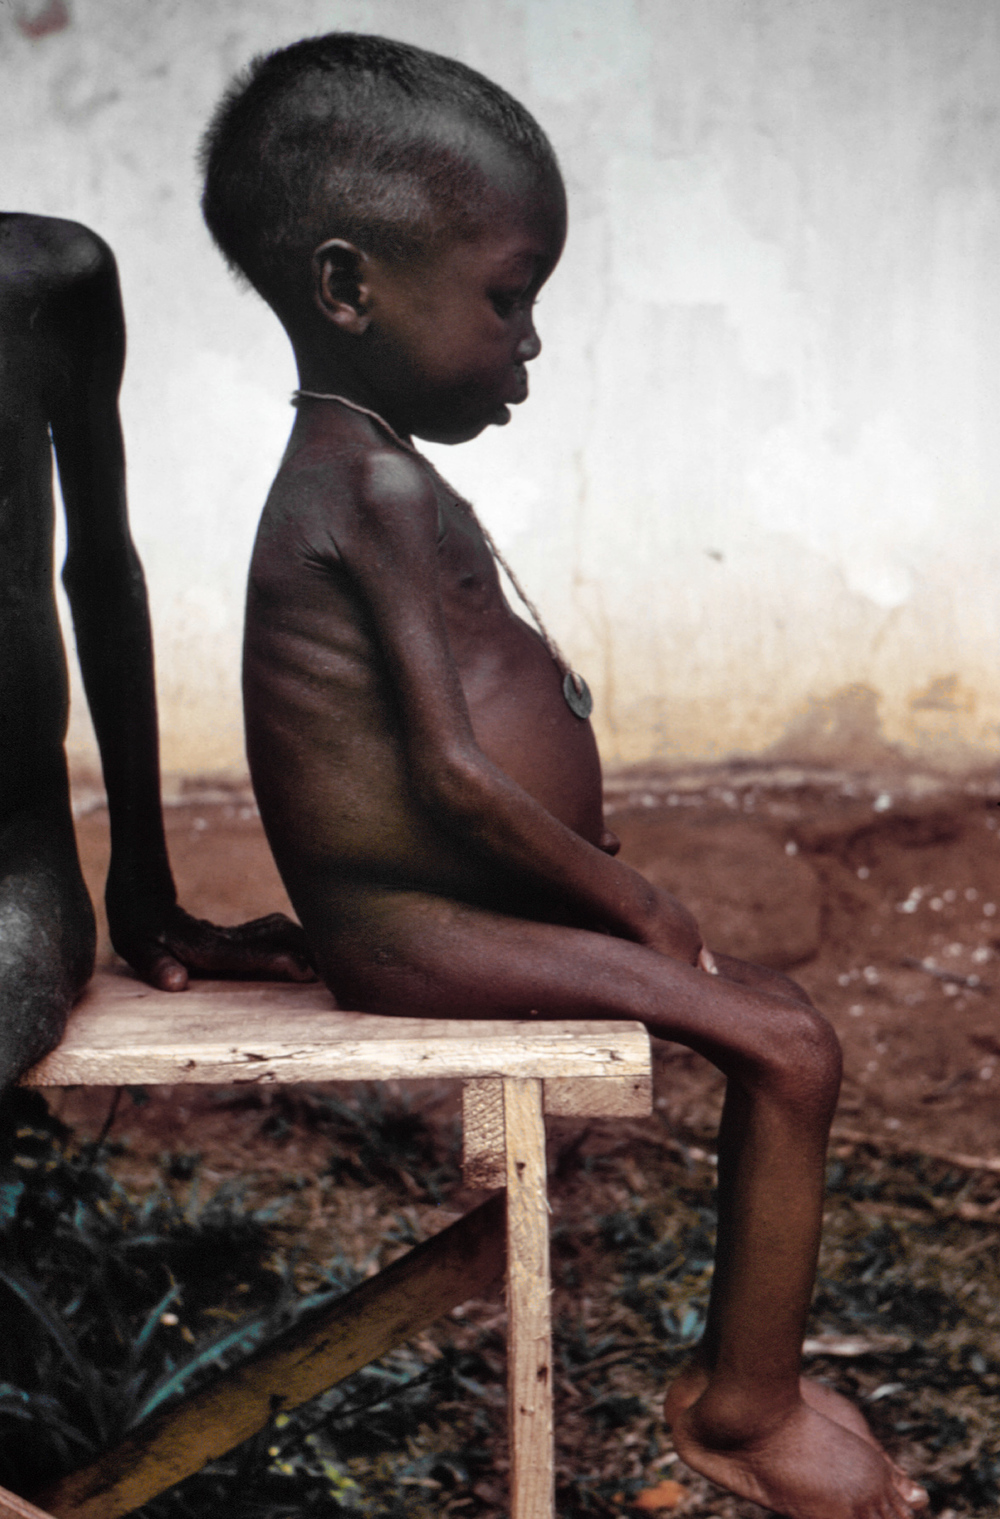 Image: Public Domain Image from https://en.wikipedia.org/wiki/Starvation#/media/File:Starved_girl.jpg